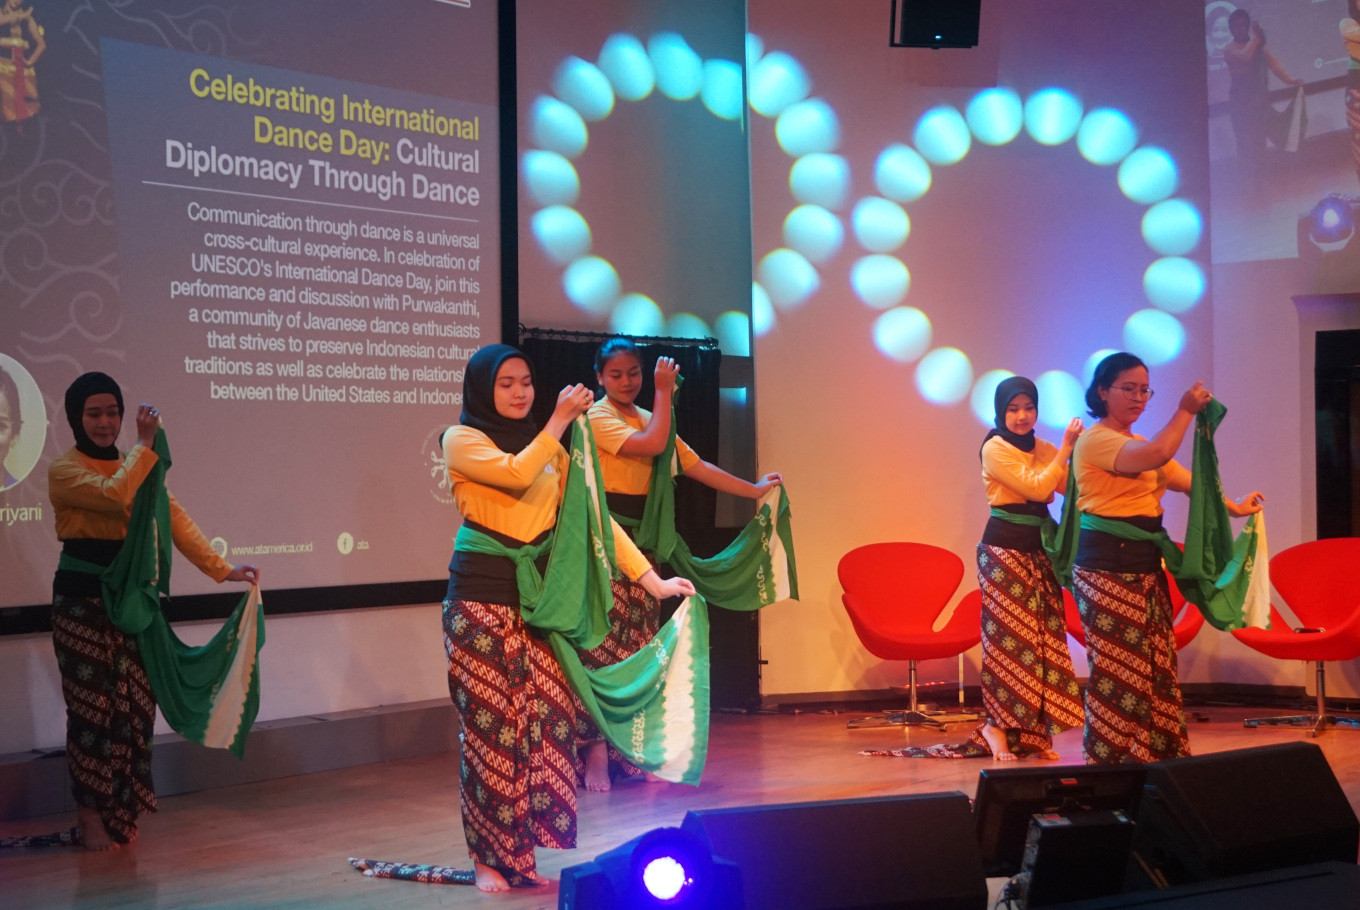 Jakarta event highlights dance as part of cultural diplomacy